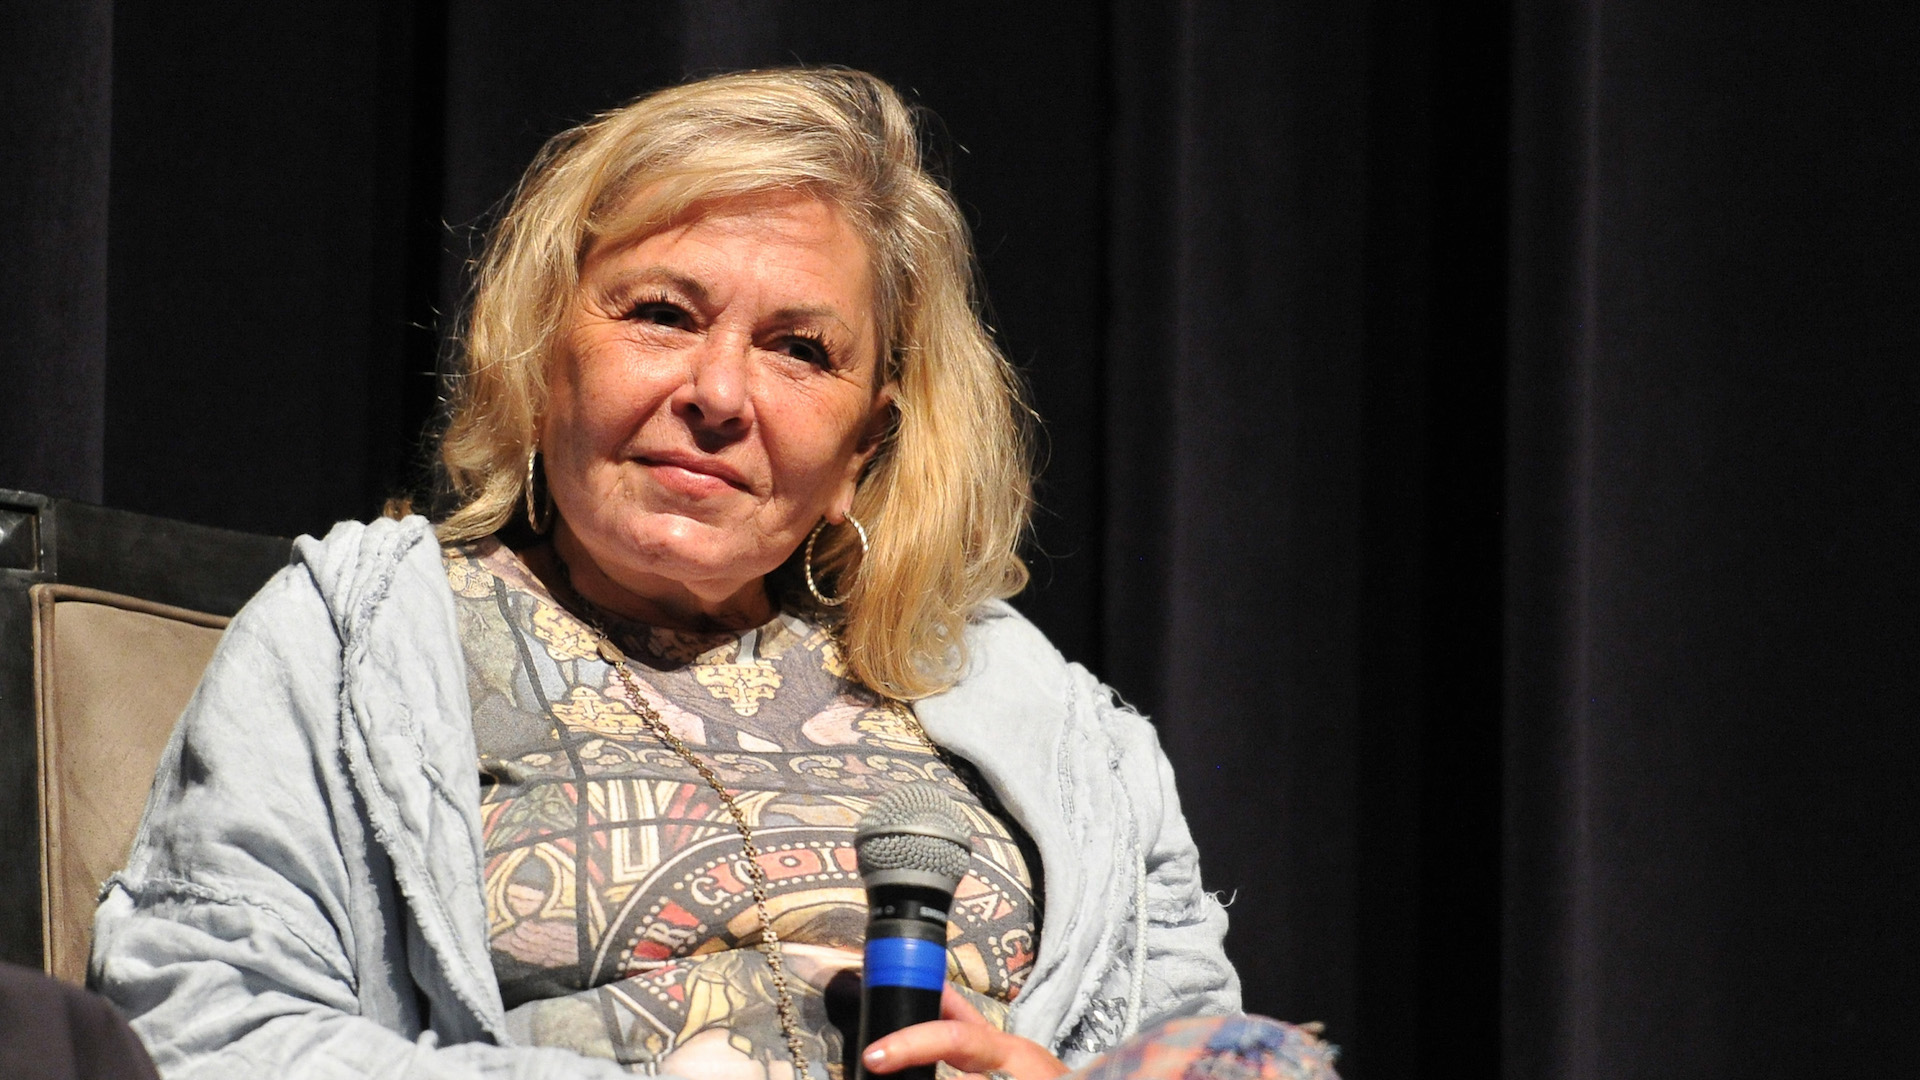 Roseanne Barr Wonders If Coronavirus Is a Plot to 'Get Rid of All My Generation'